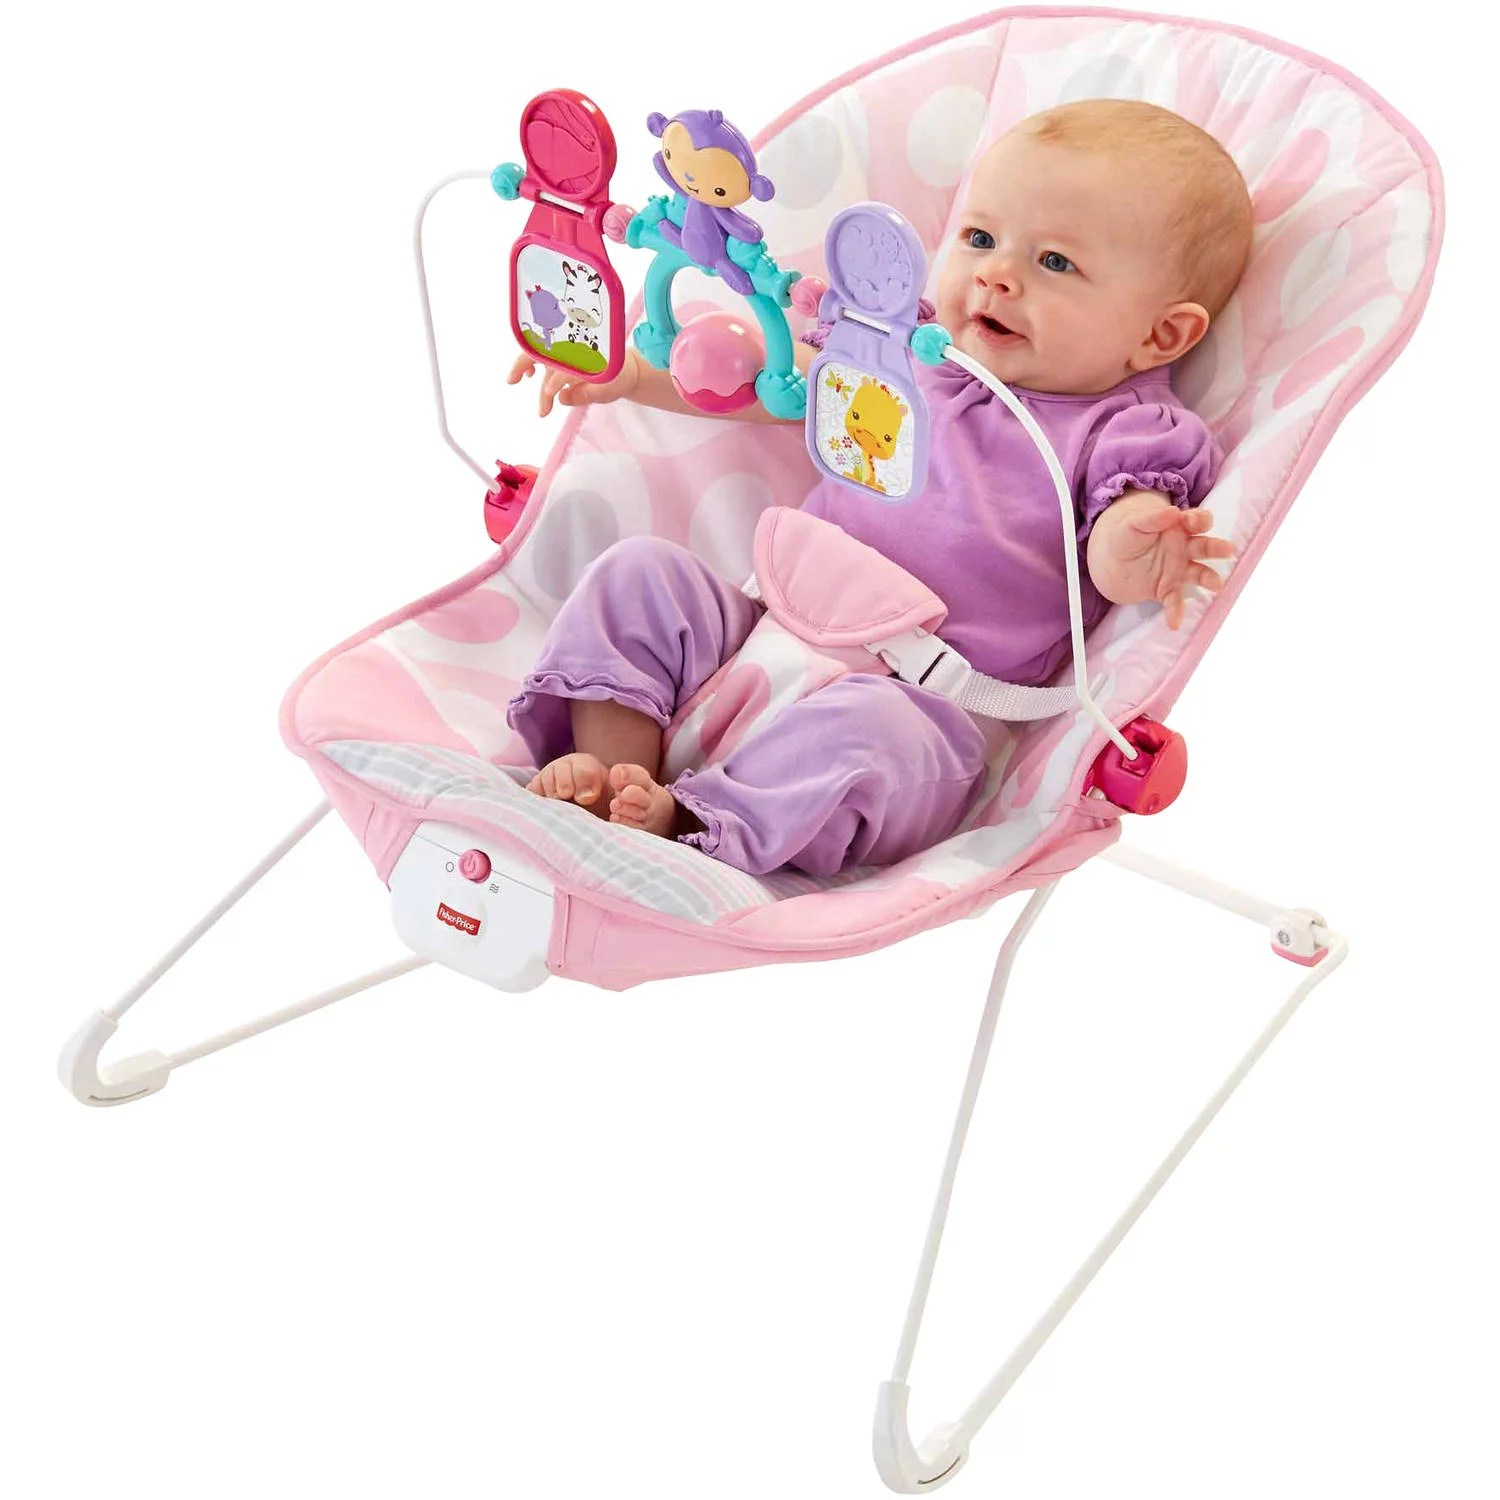 Bouncer Baby Fisher Price Baby S Bouncer Pink Ellipse